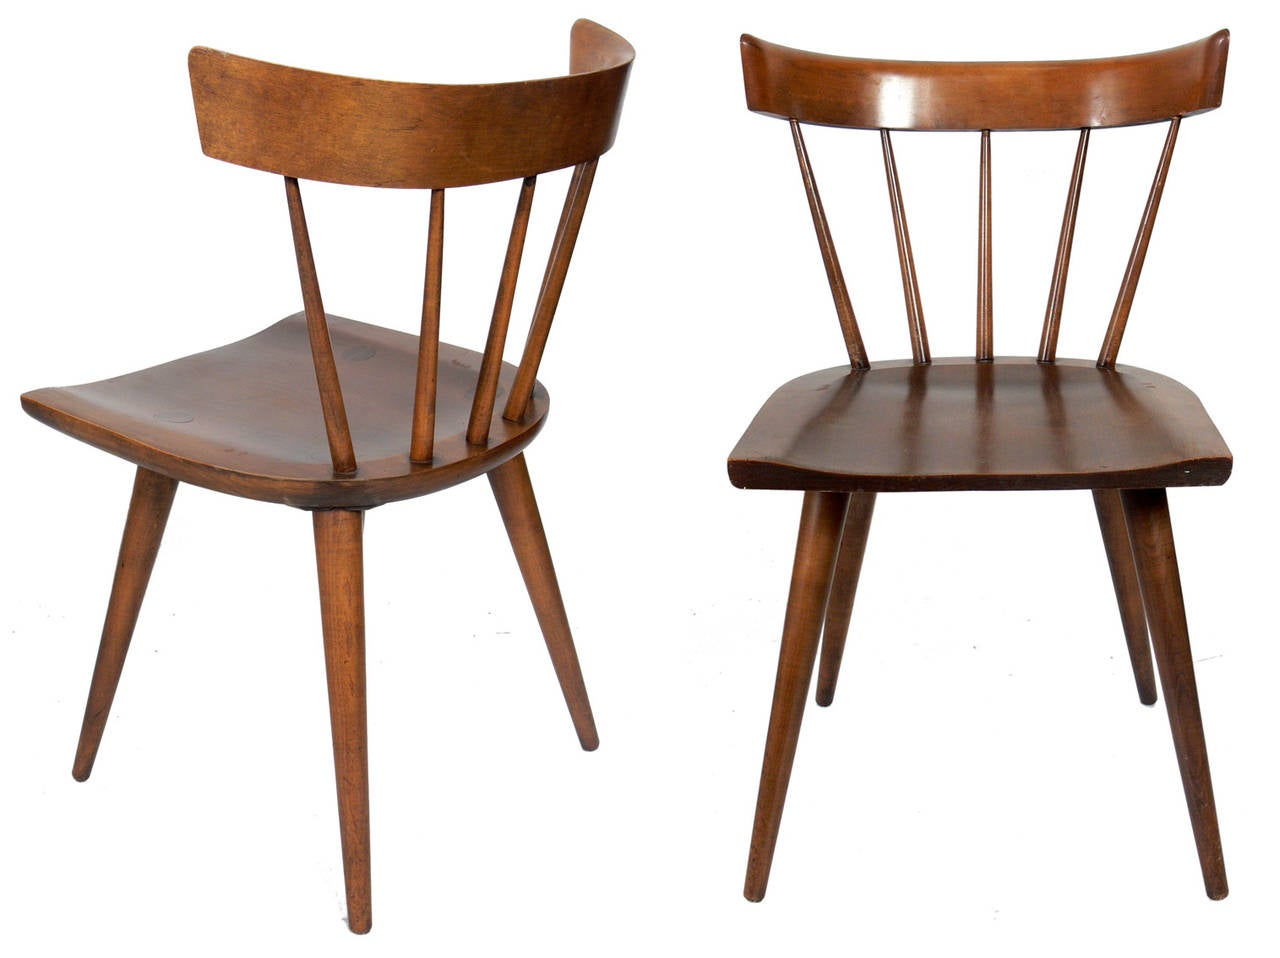 Selection Of Mid Century Modern Desk Chairs Image 4